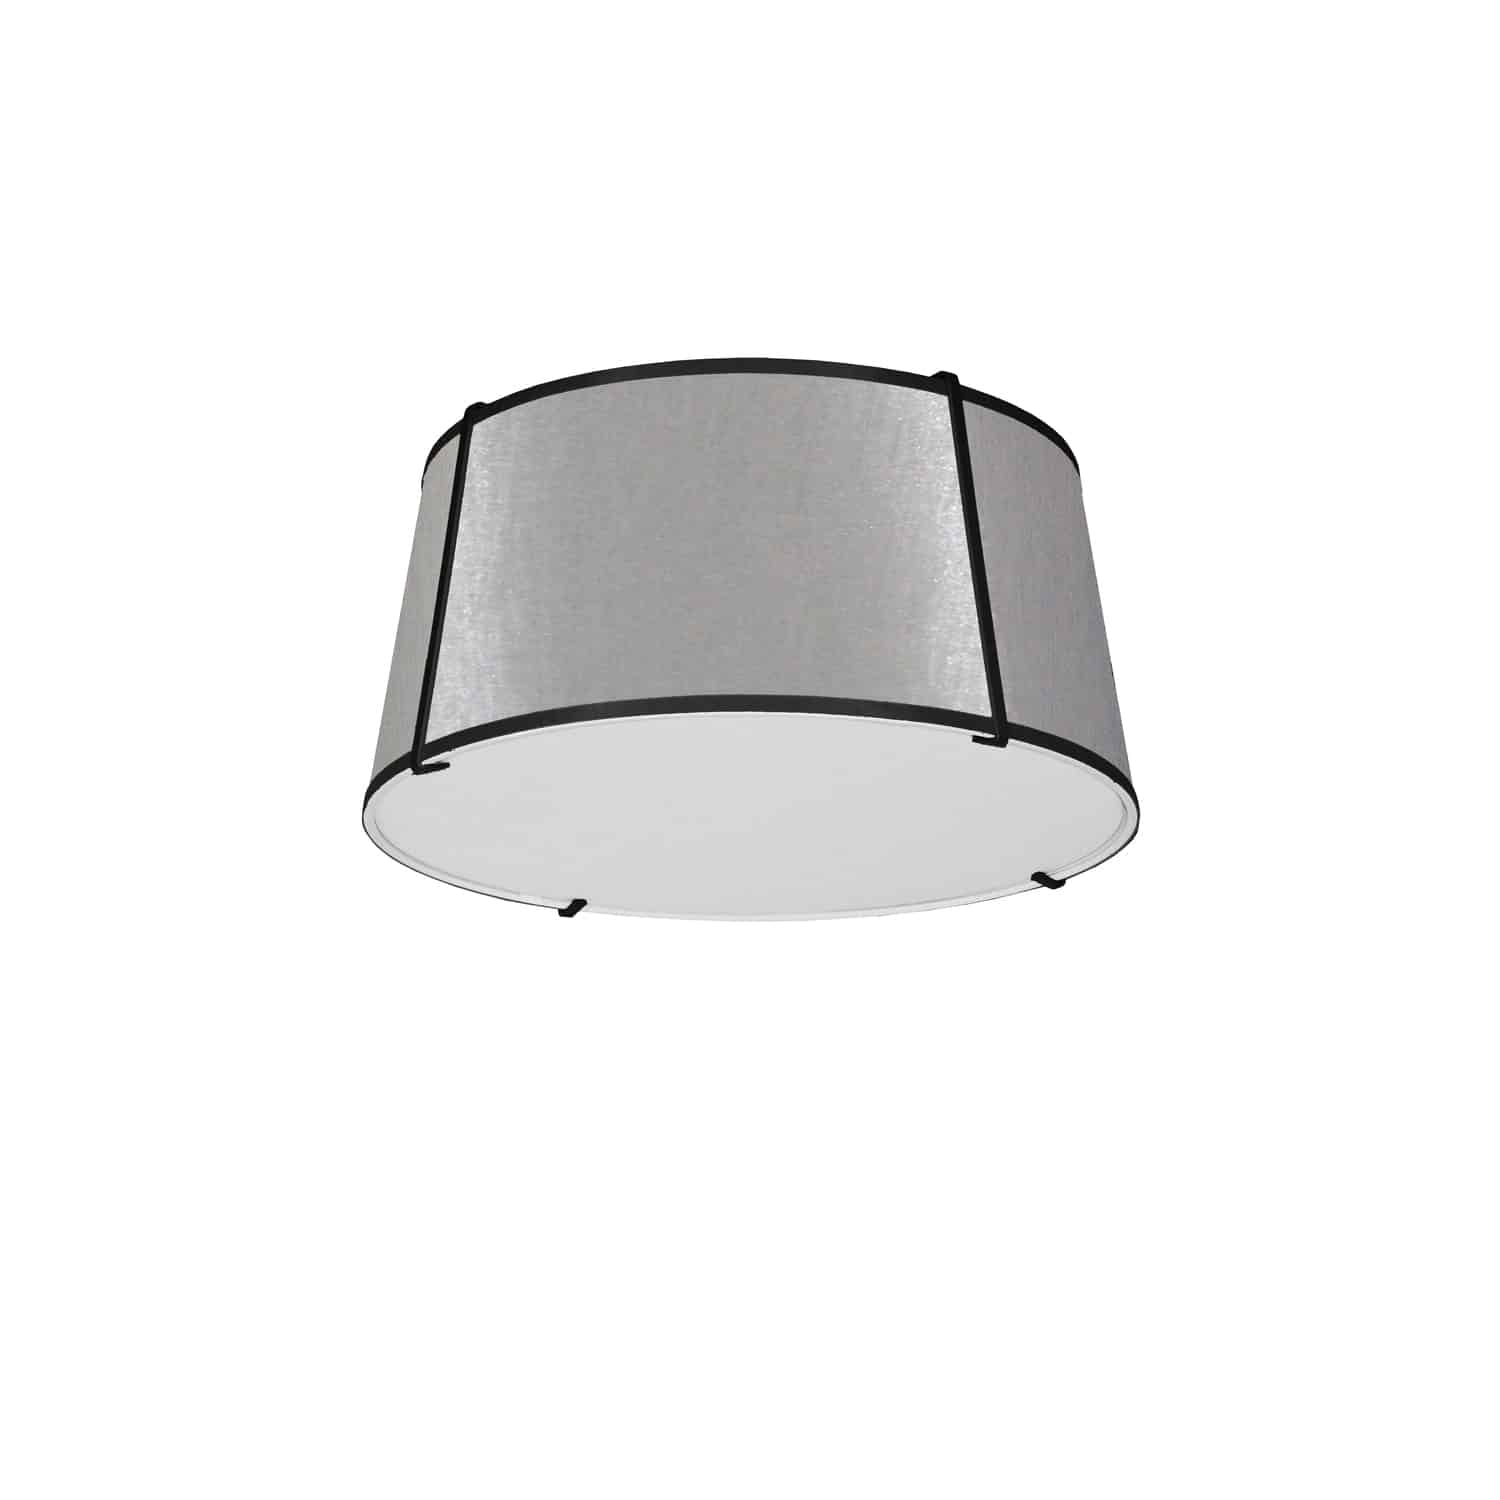 3 Light Trapezoid Flush Mount Black Grey Shade with 790 Diffuser